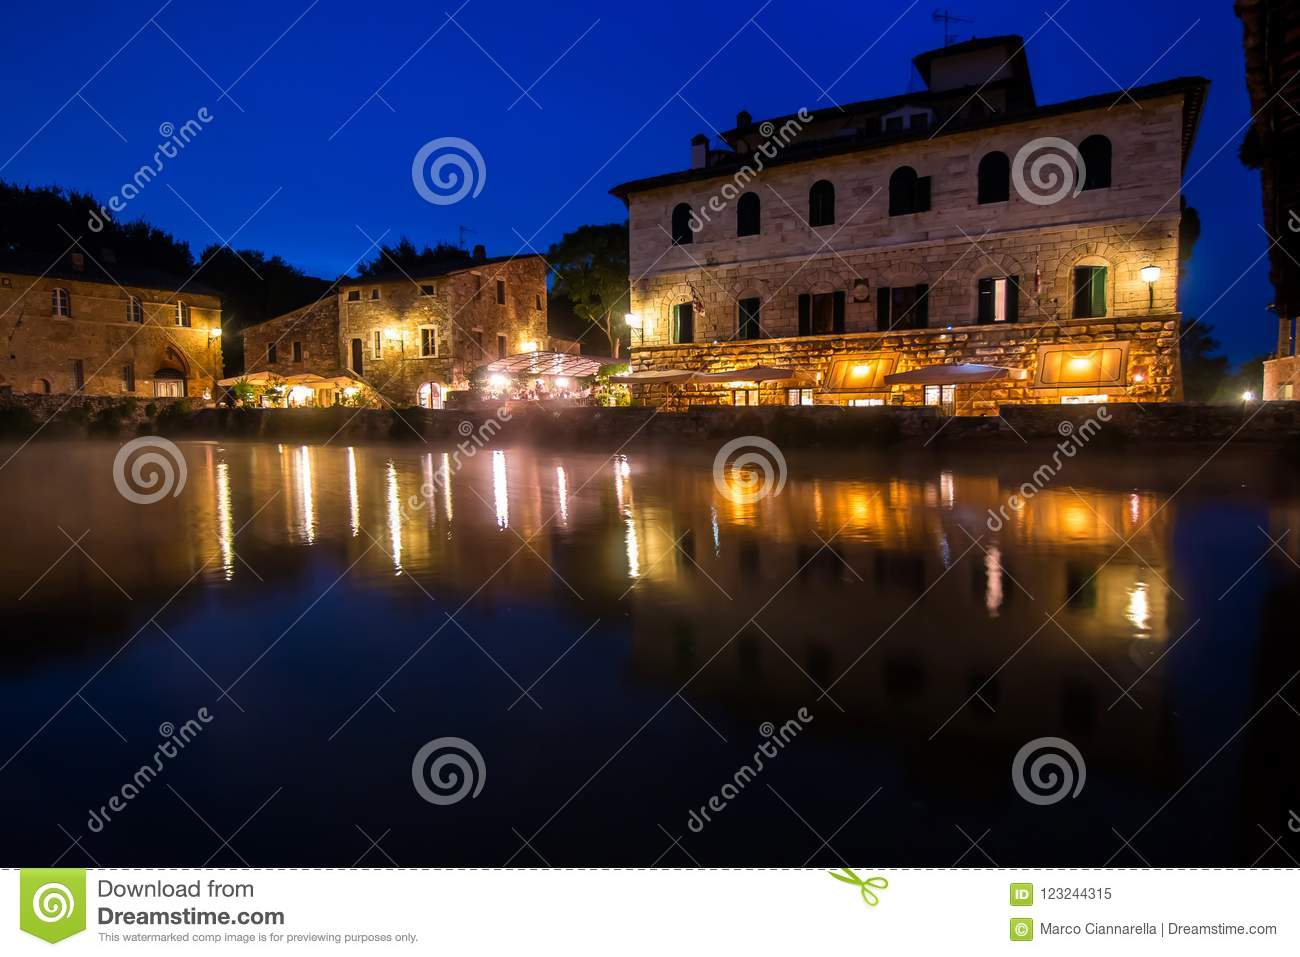 Bagno Vignoni Free Thermal Baths Ancient Thermal Bath In Bagno Vignoni Italy Stock Image Image